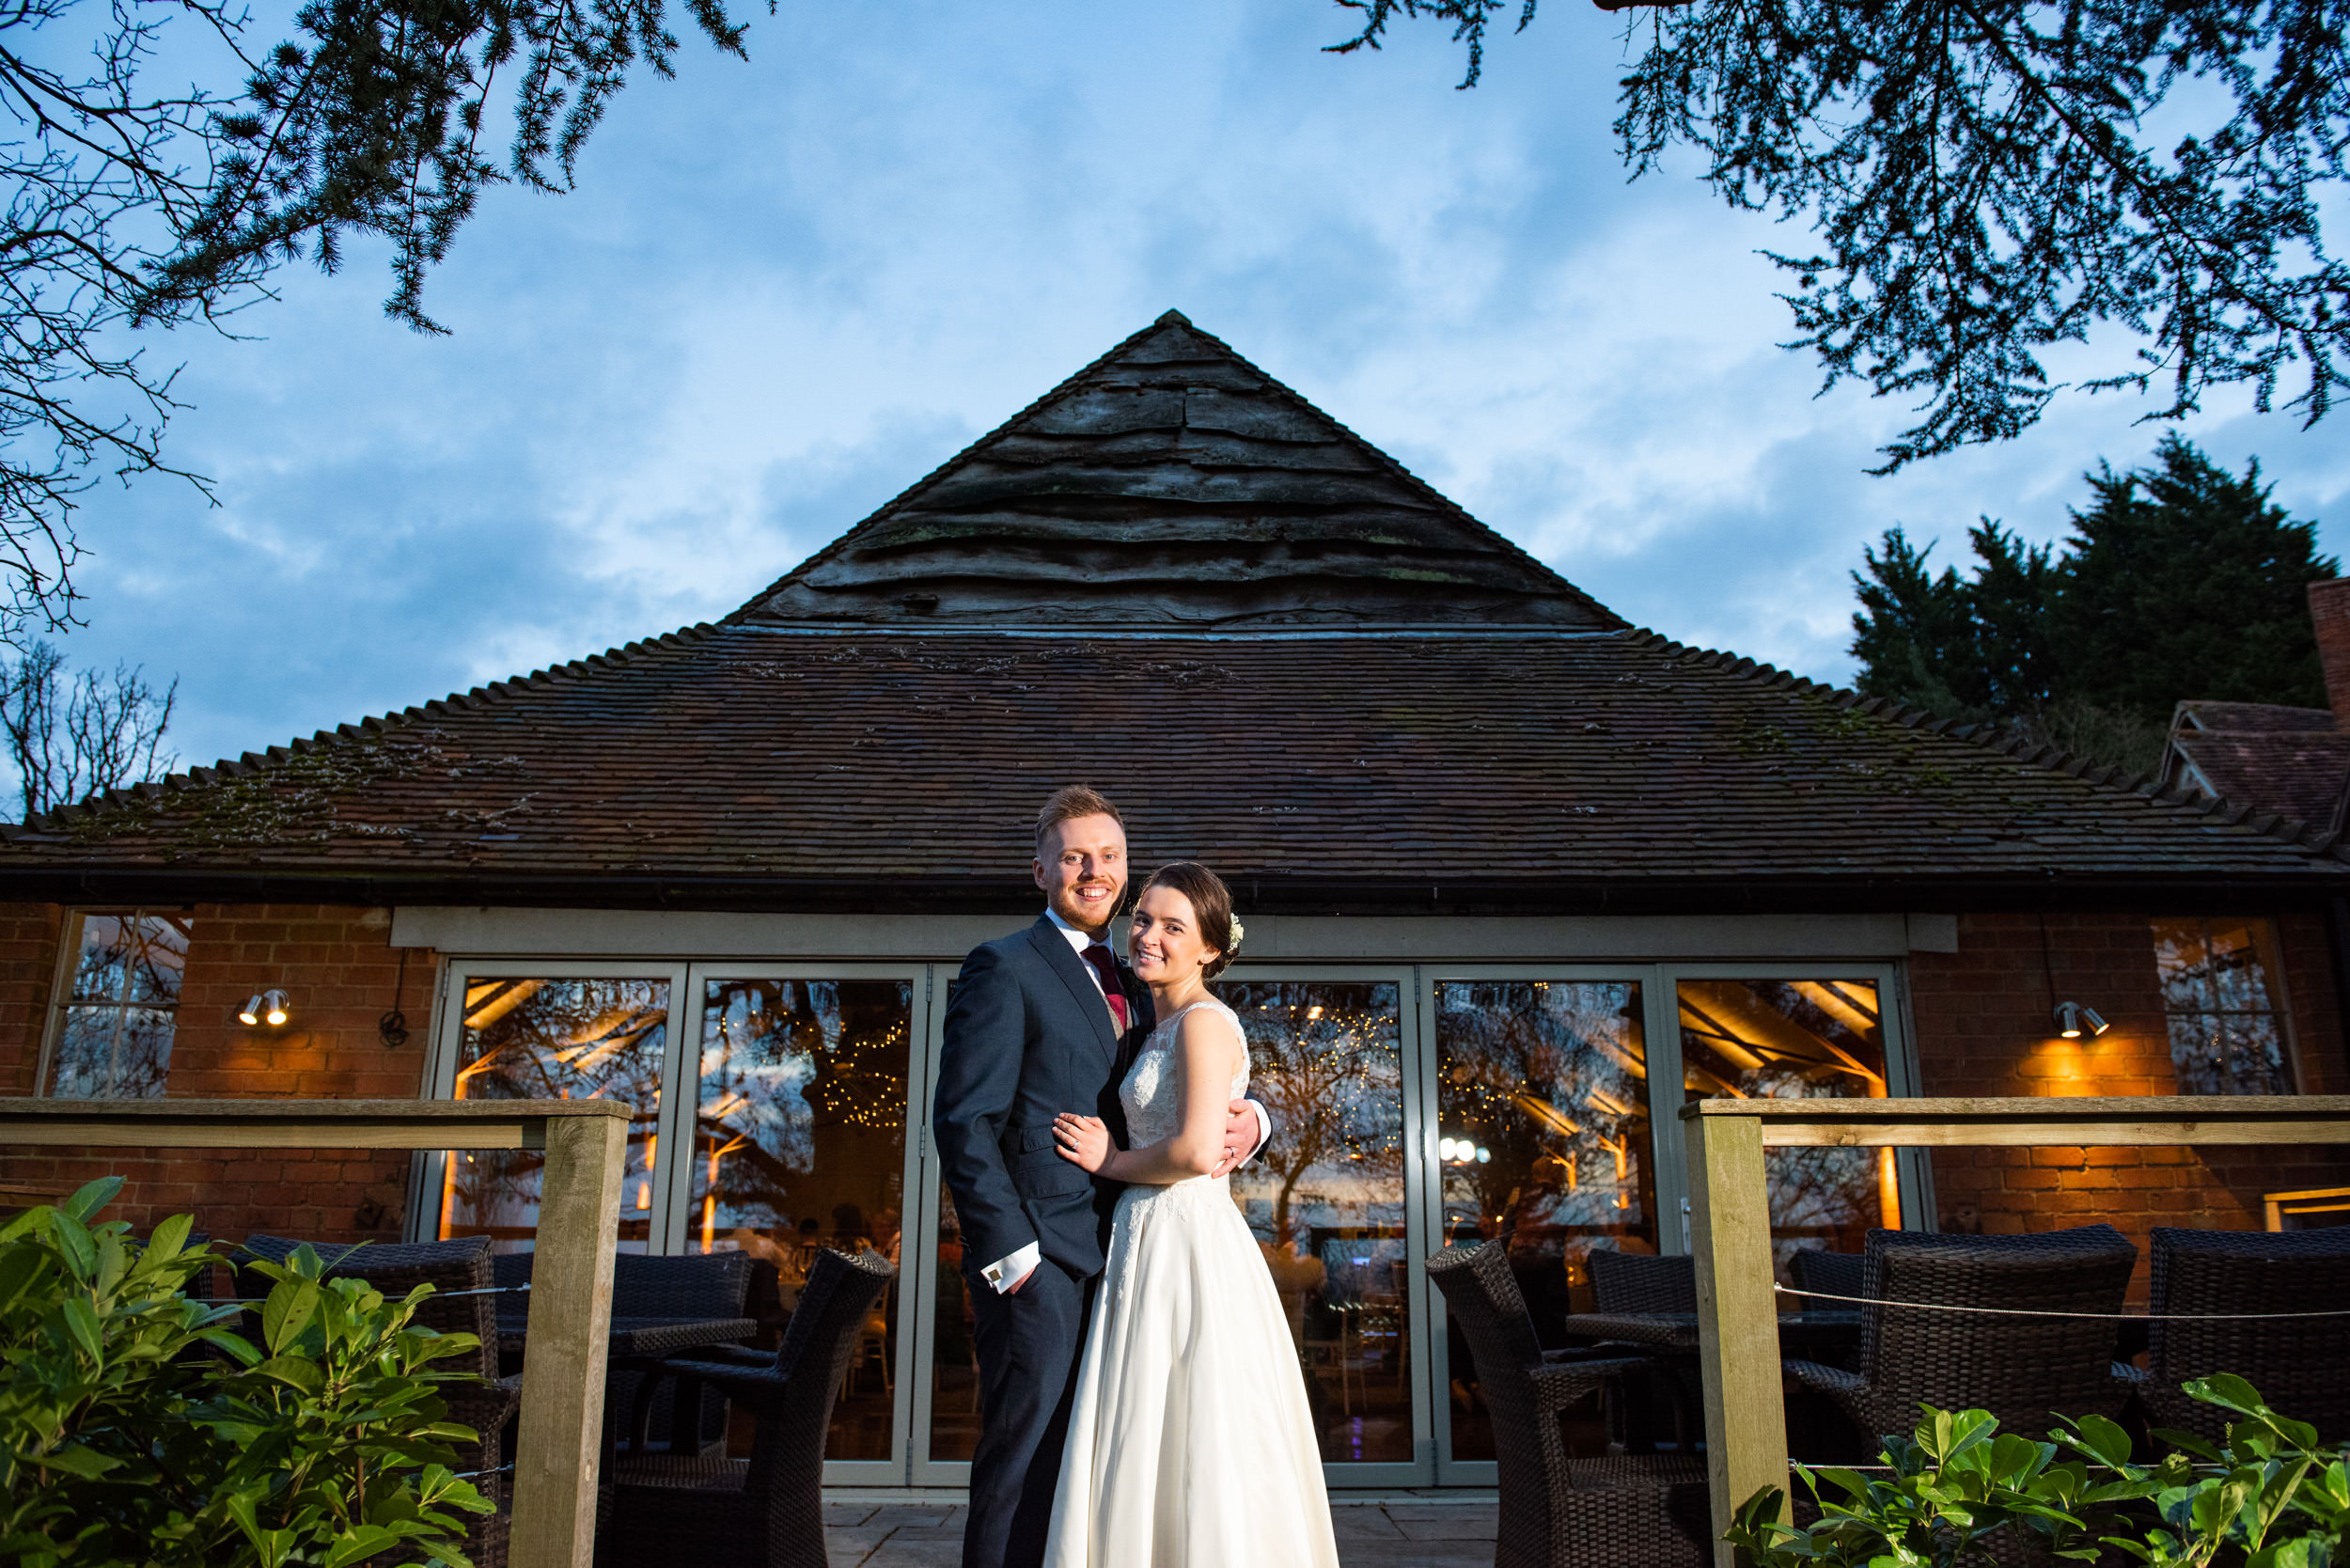 Twilight portrait of the Newlyweds outside Gorcott Hall Reception barn